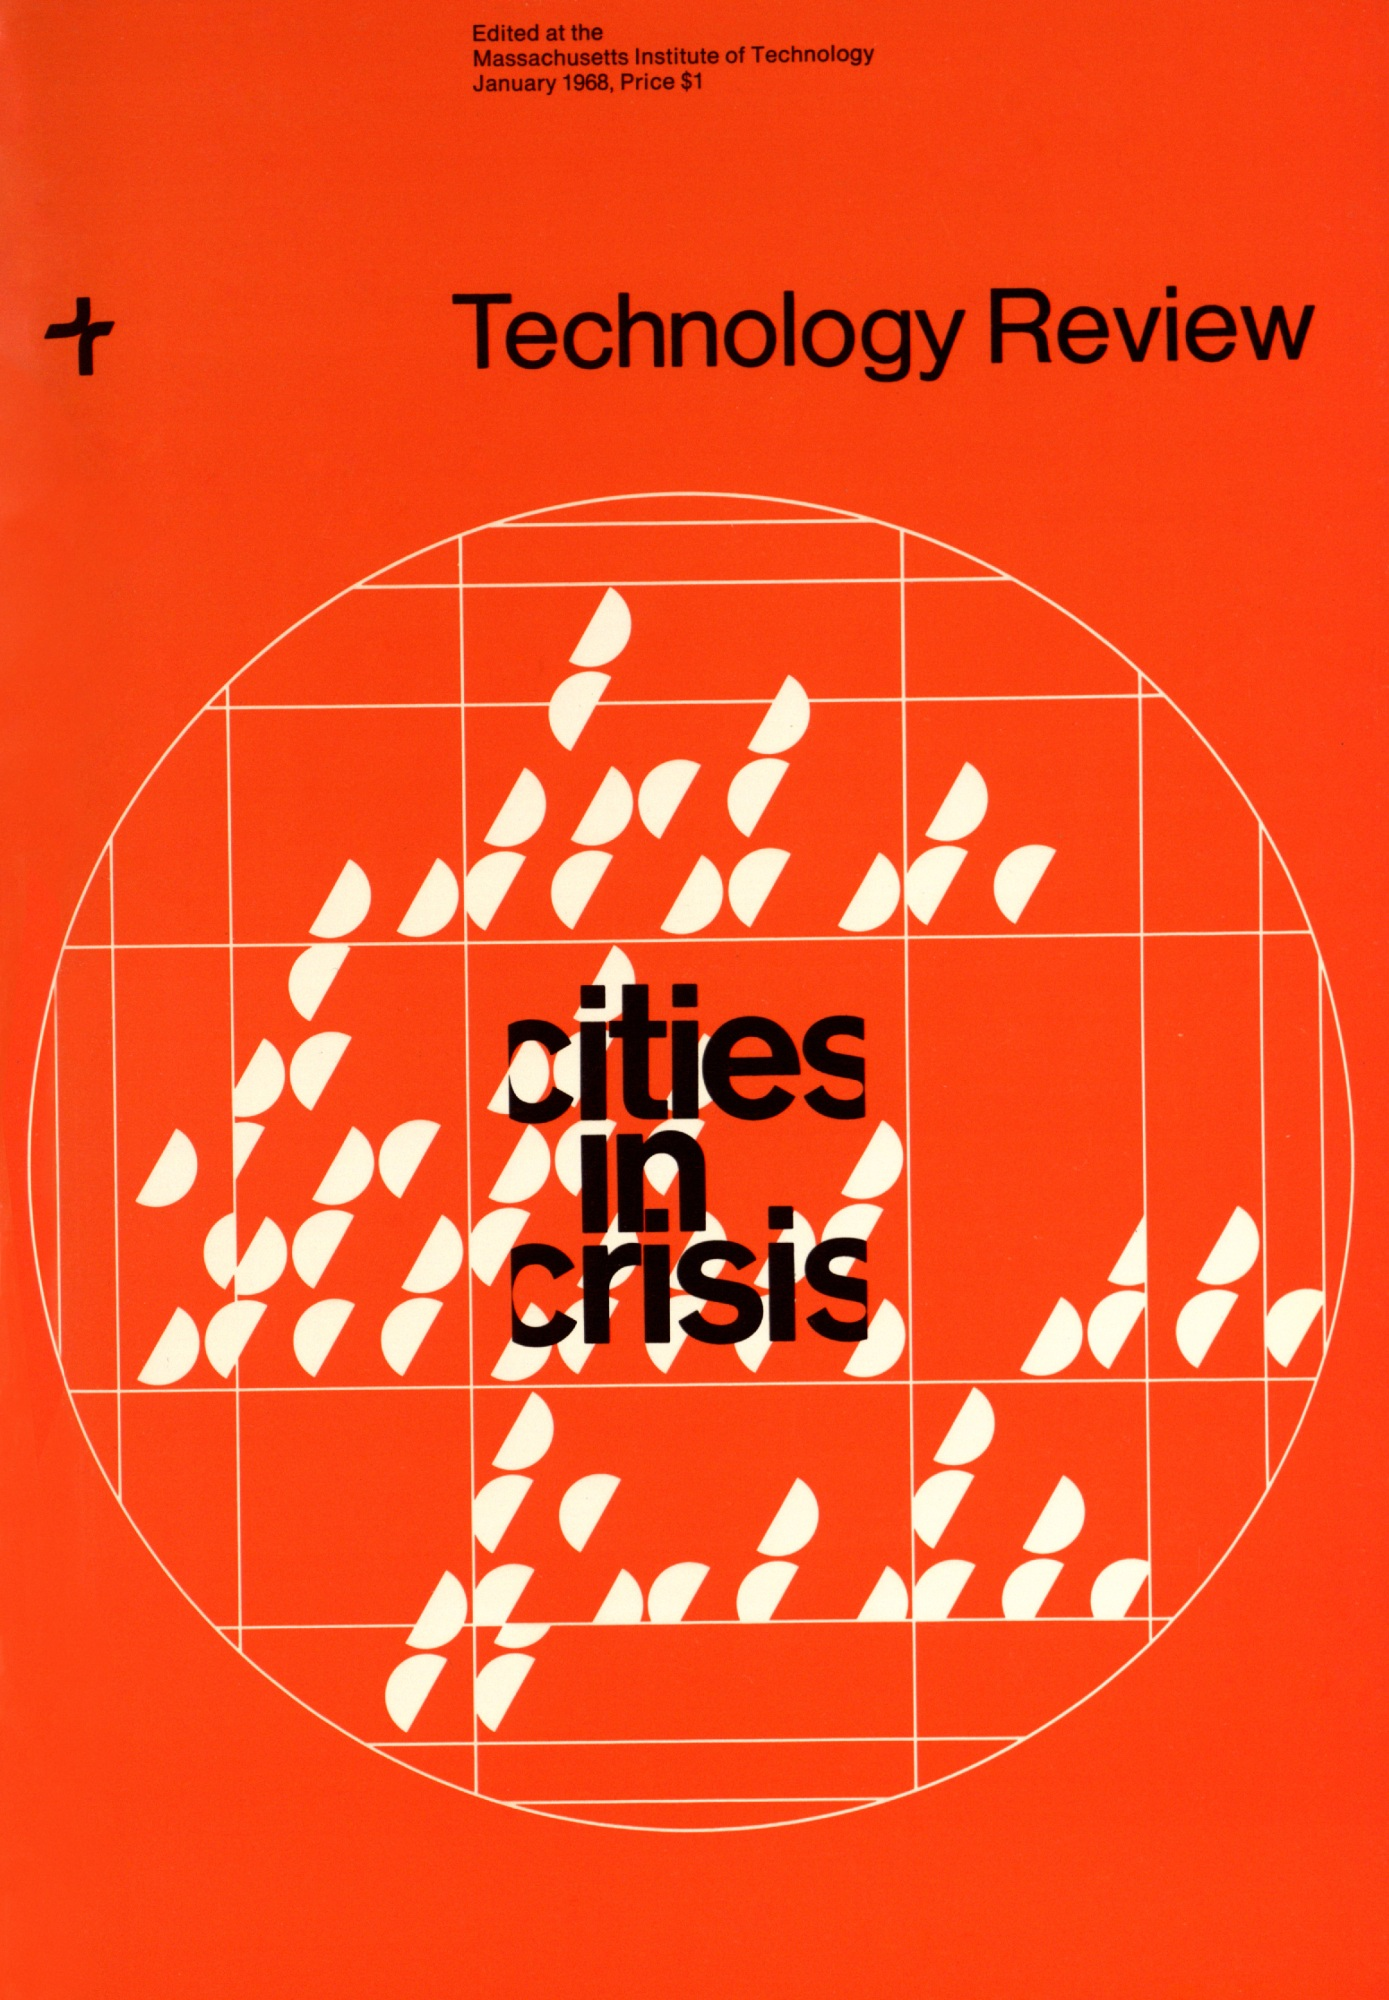 May/June 1968 cover